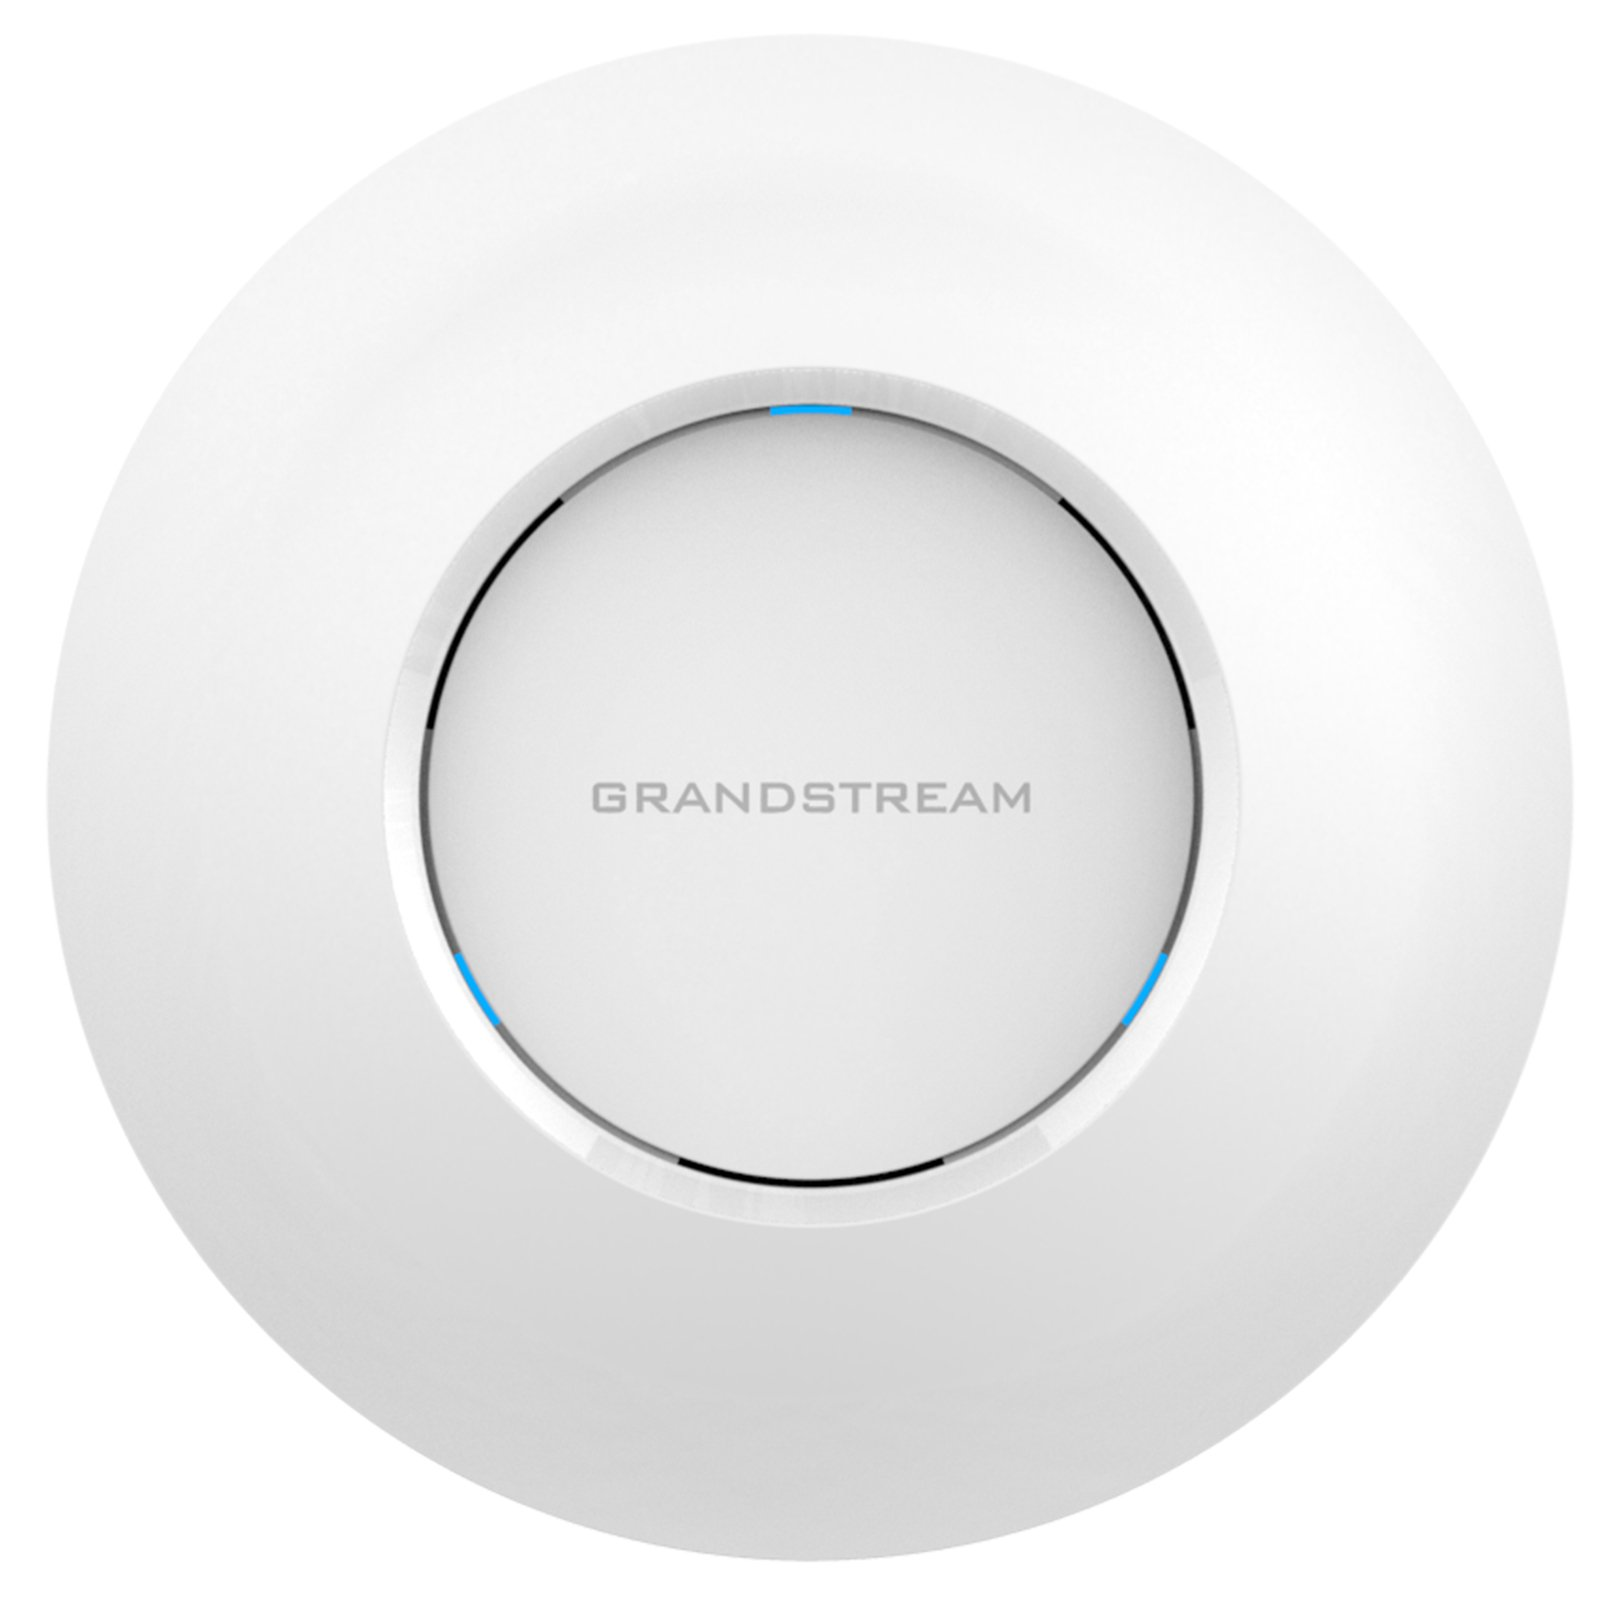 grandstream gwn7600 wifi access point front